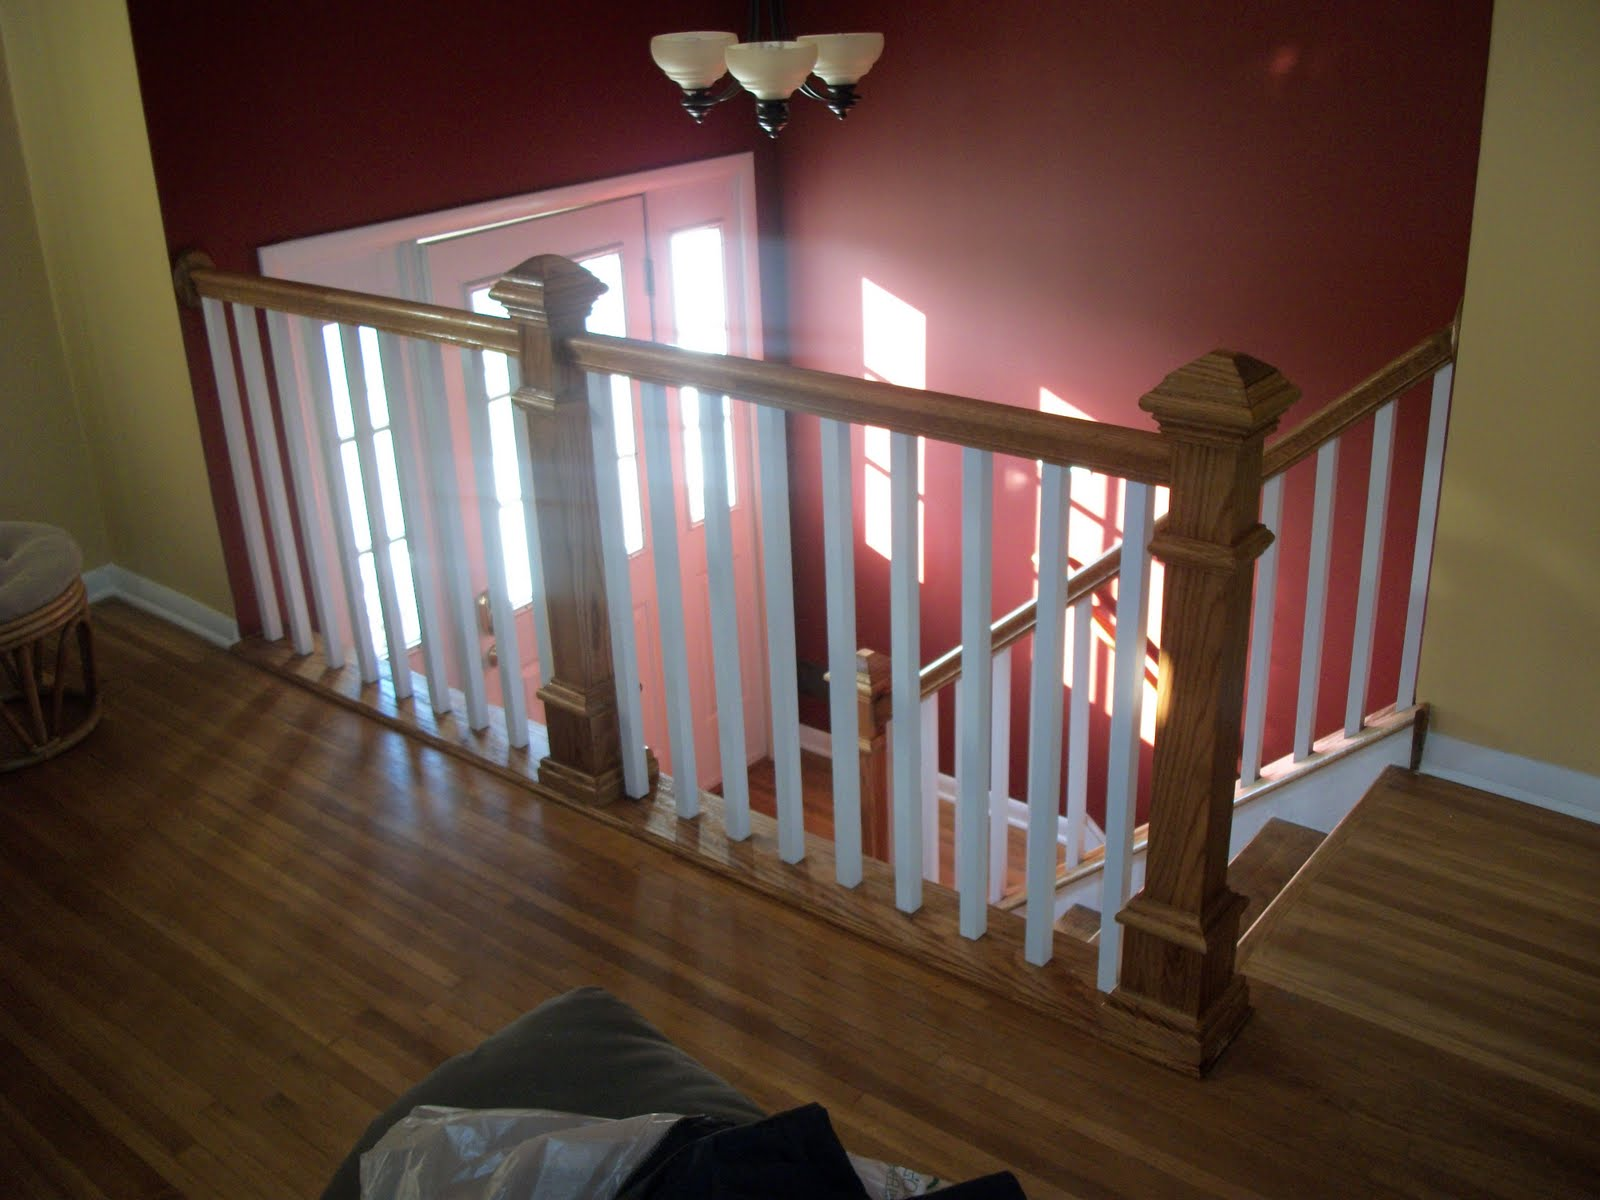 ... interior stair Case railing designs, White Baluster Oak stair railings